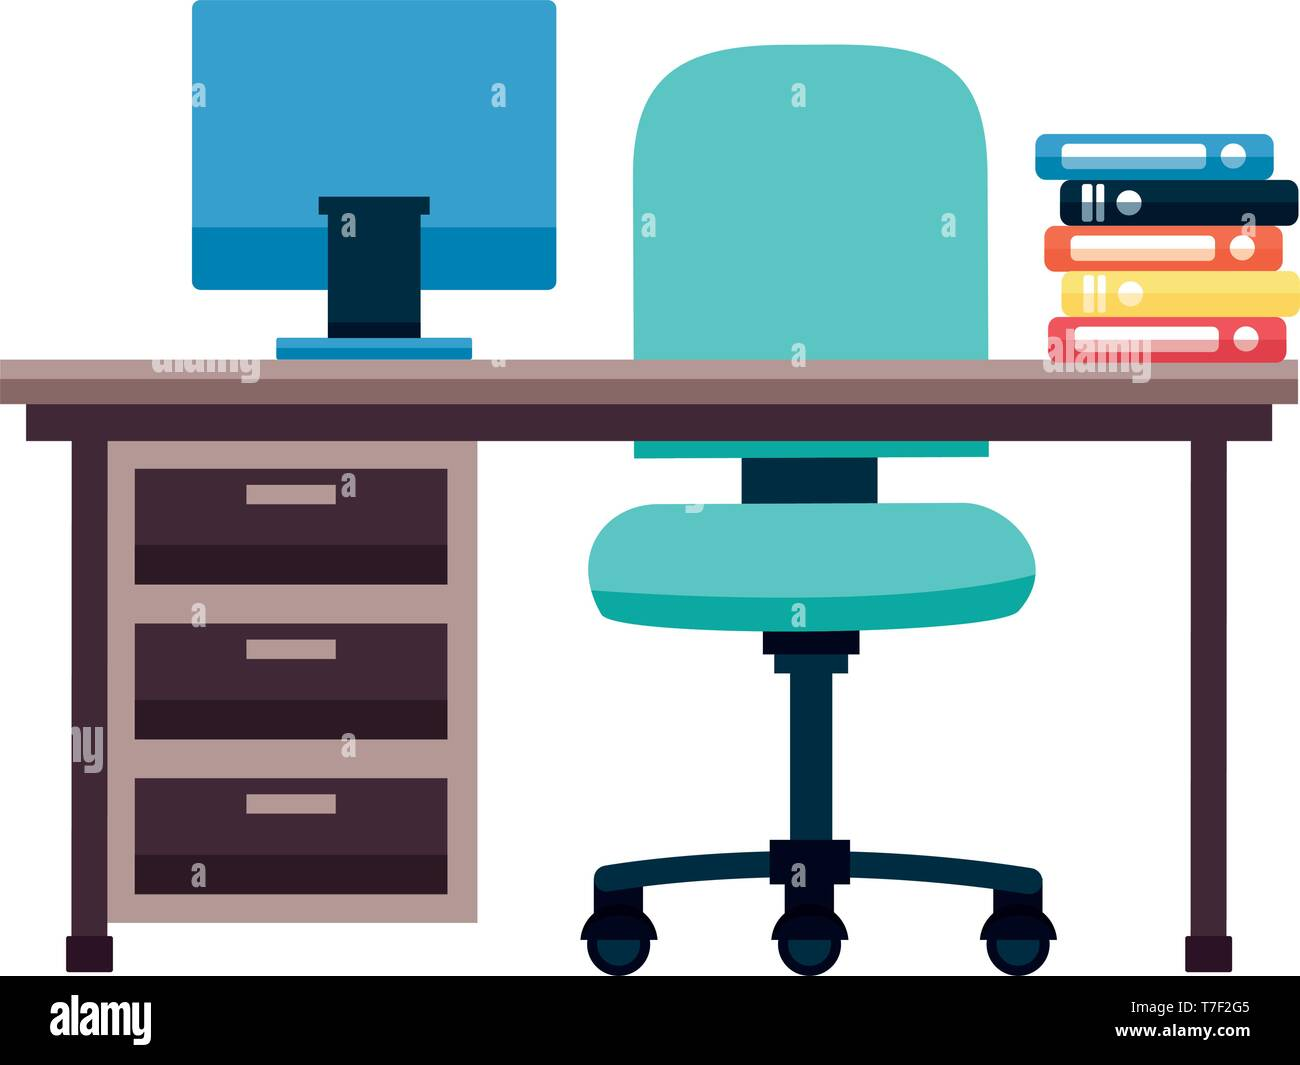 Swell Office Desk Books Stock Vector Art Illustration Vector Download Free Architecture Designs Ogrambritishbridgeorg